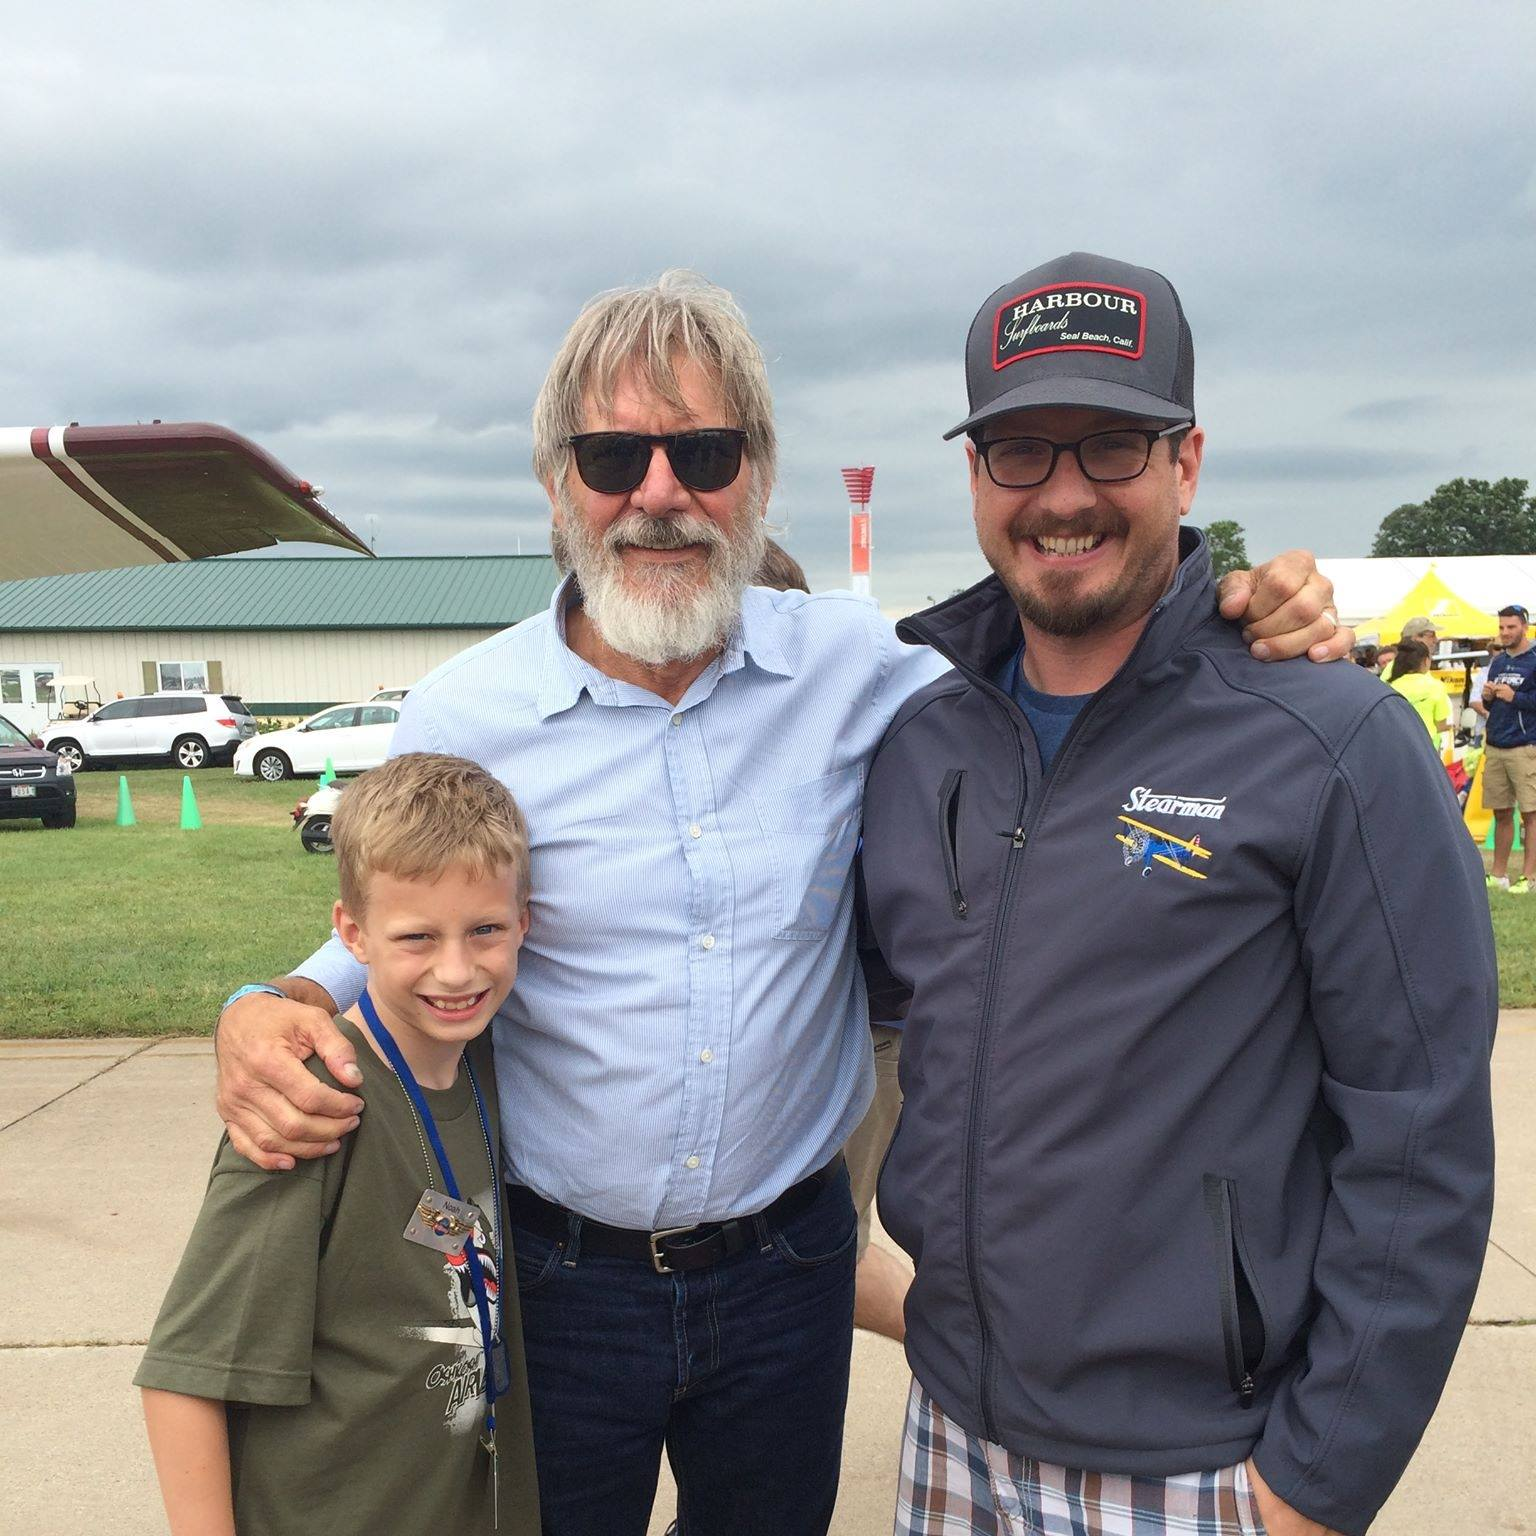 Harrison Ford, yes that one, me, and my oldest son, Noah. That's how we roll.